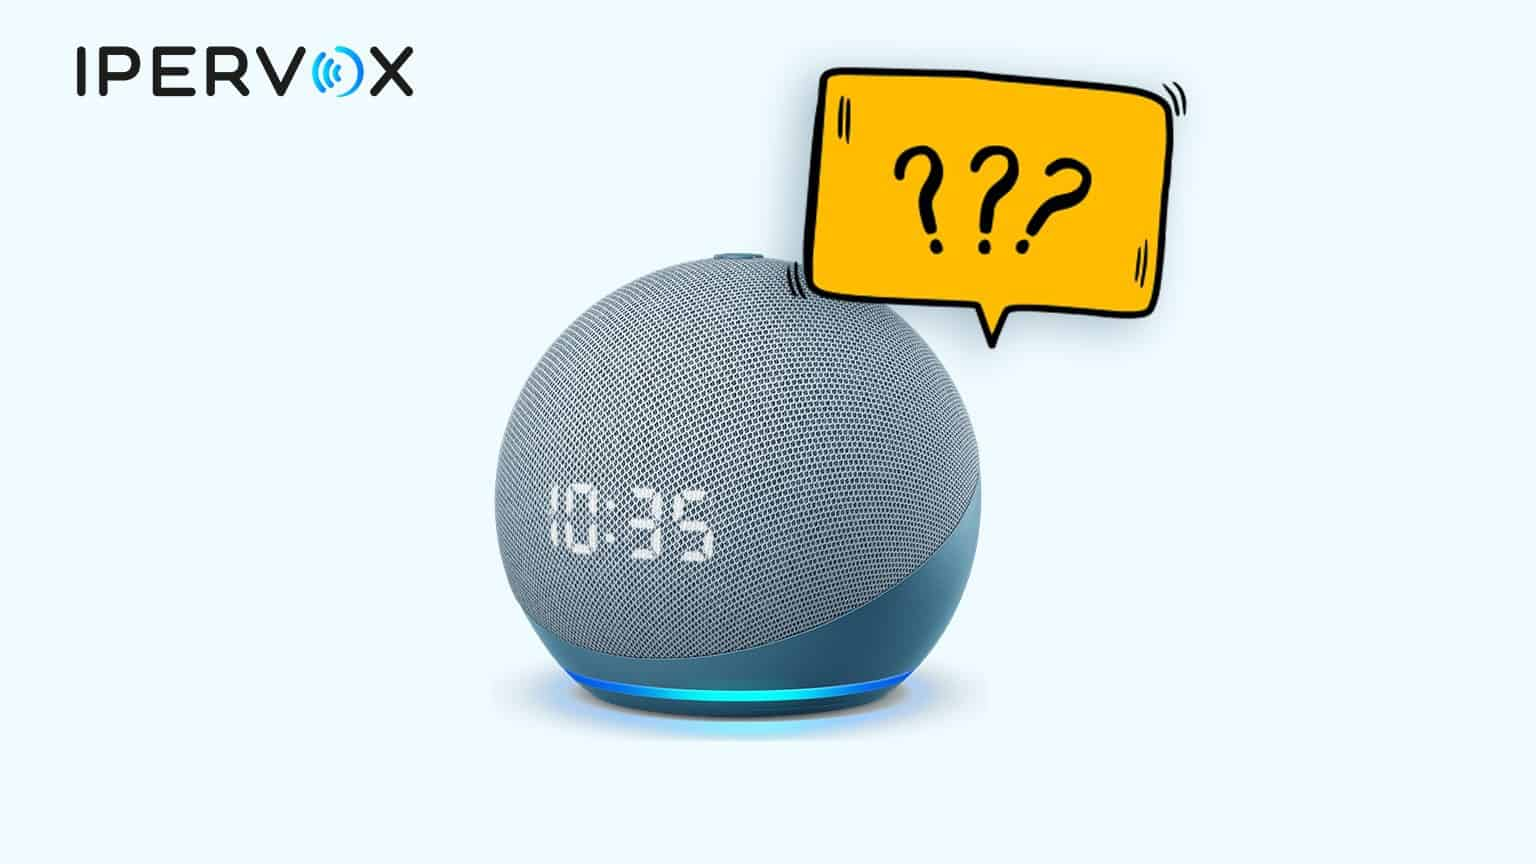 An Amazon Echo device for Amazon Alexa can do different things and has many skills that you can explore